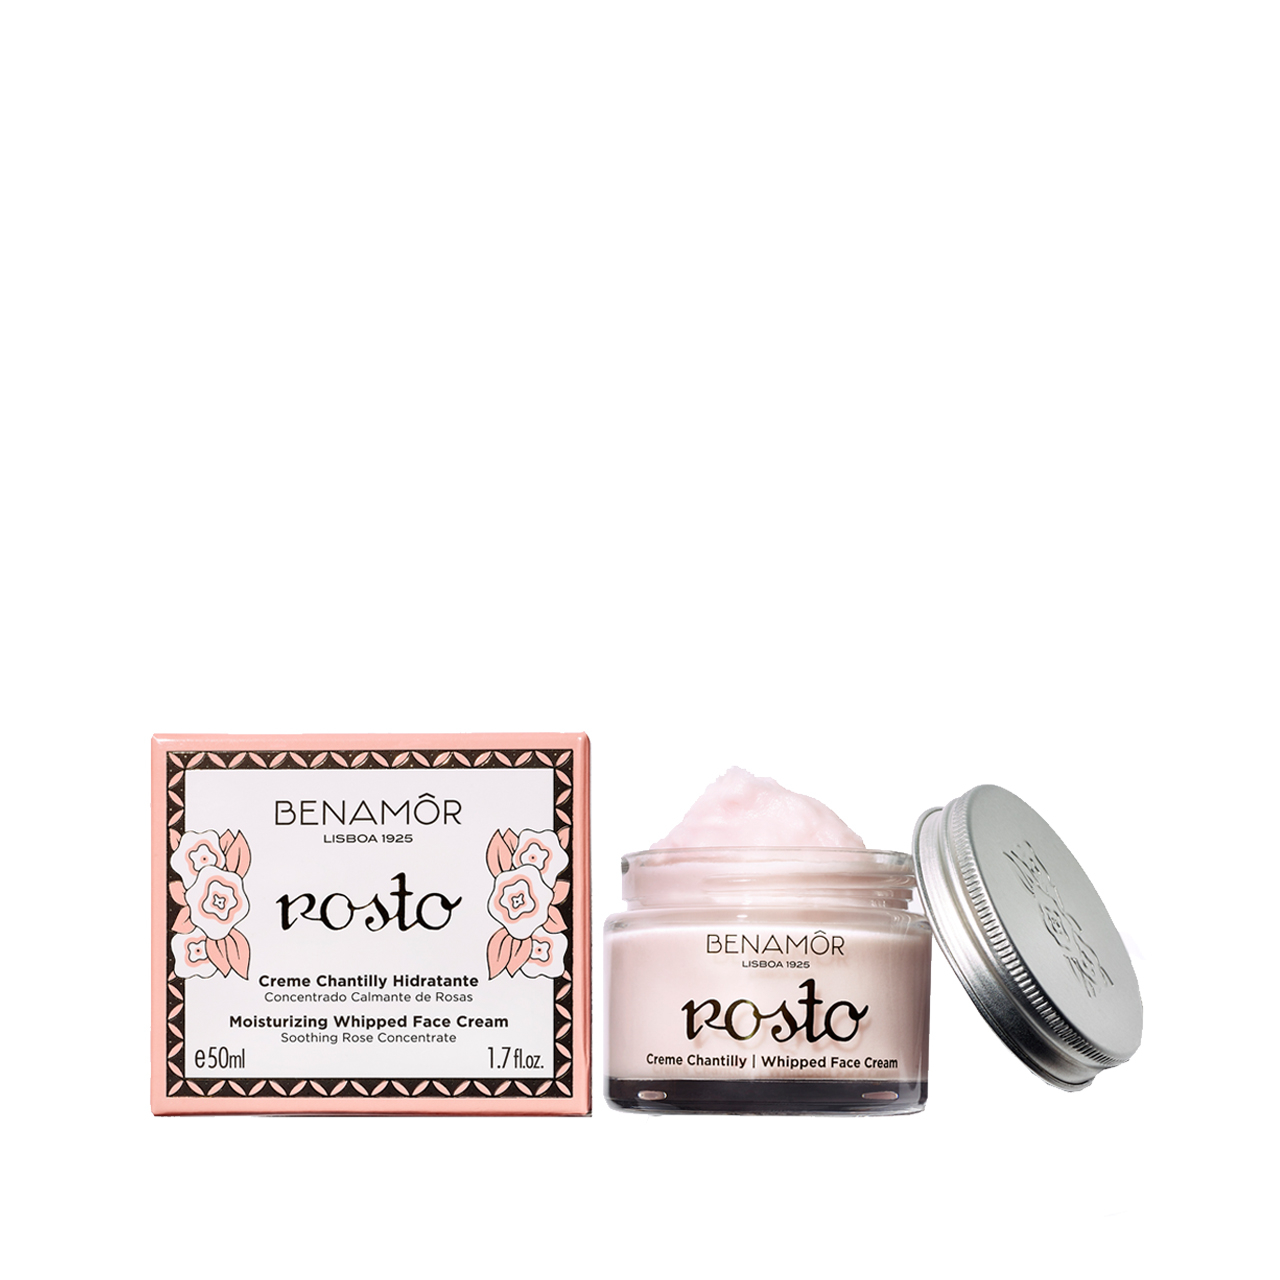 Créme de Rosto - Chantilly Face Cream